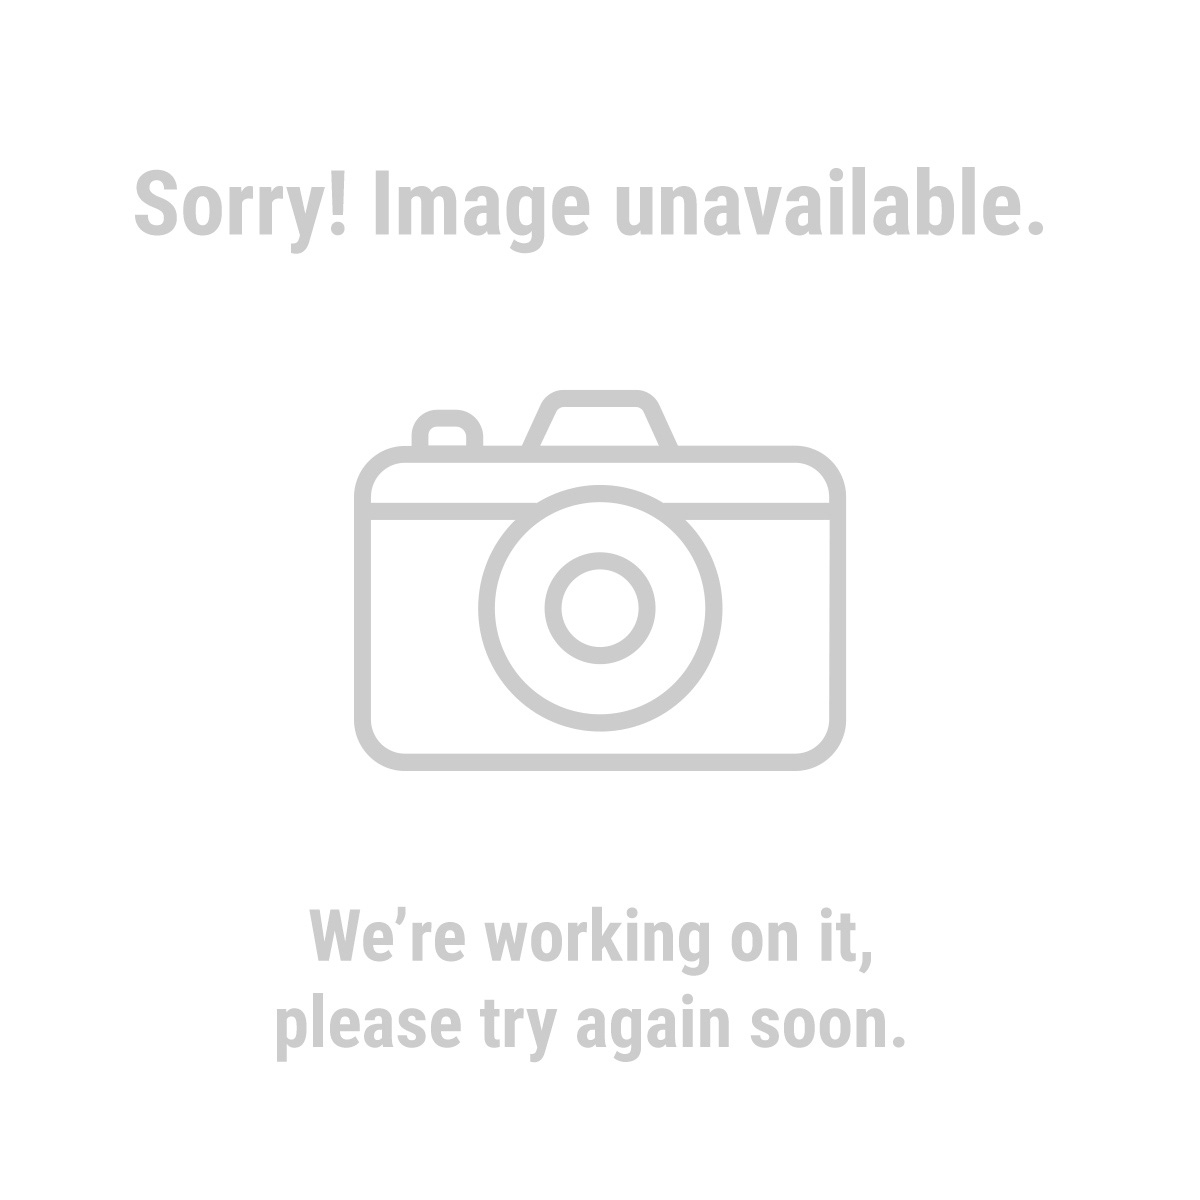 "HFT 69253 11 ft. 4"" x 11 ft. 6"" All Purpose Weather Resistant Tarp"